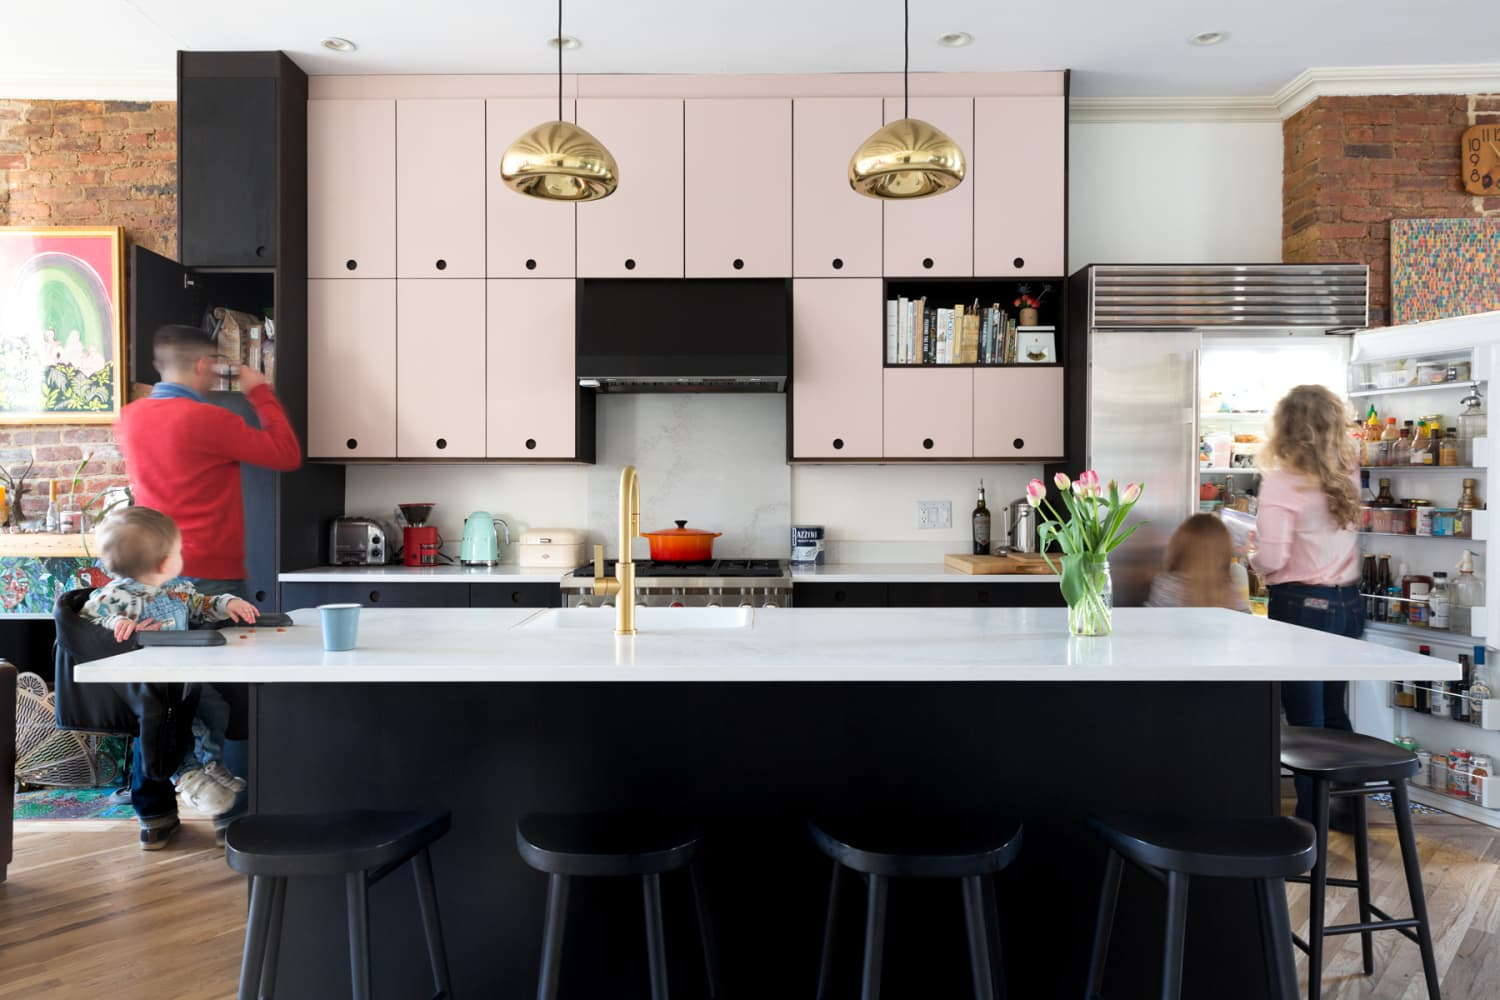 4 Kitchen Decluttering Tips Professional Organizers Would Never Tell You for Free